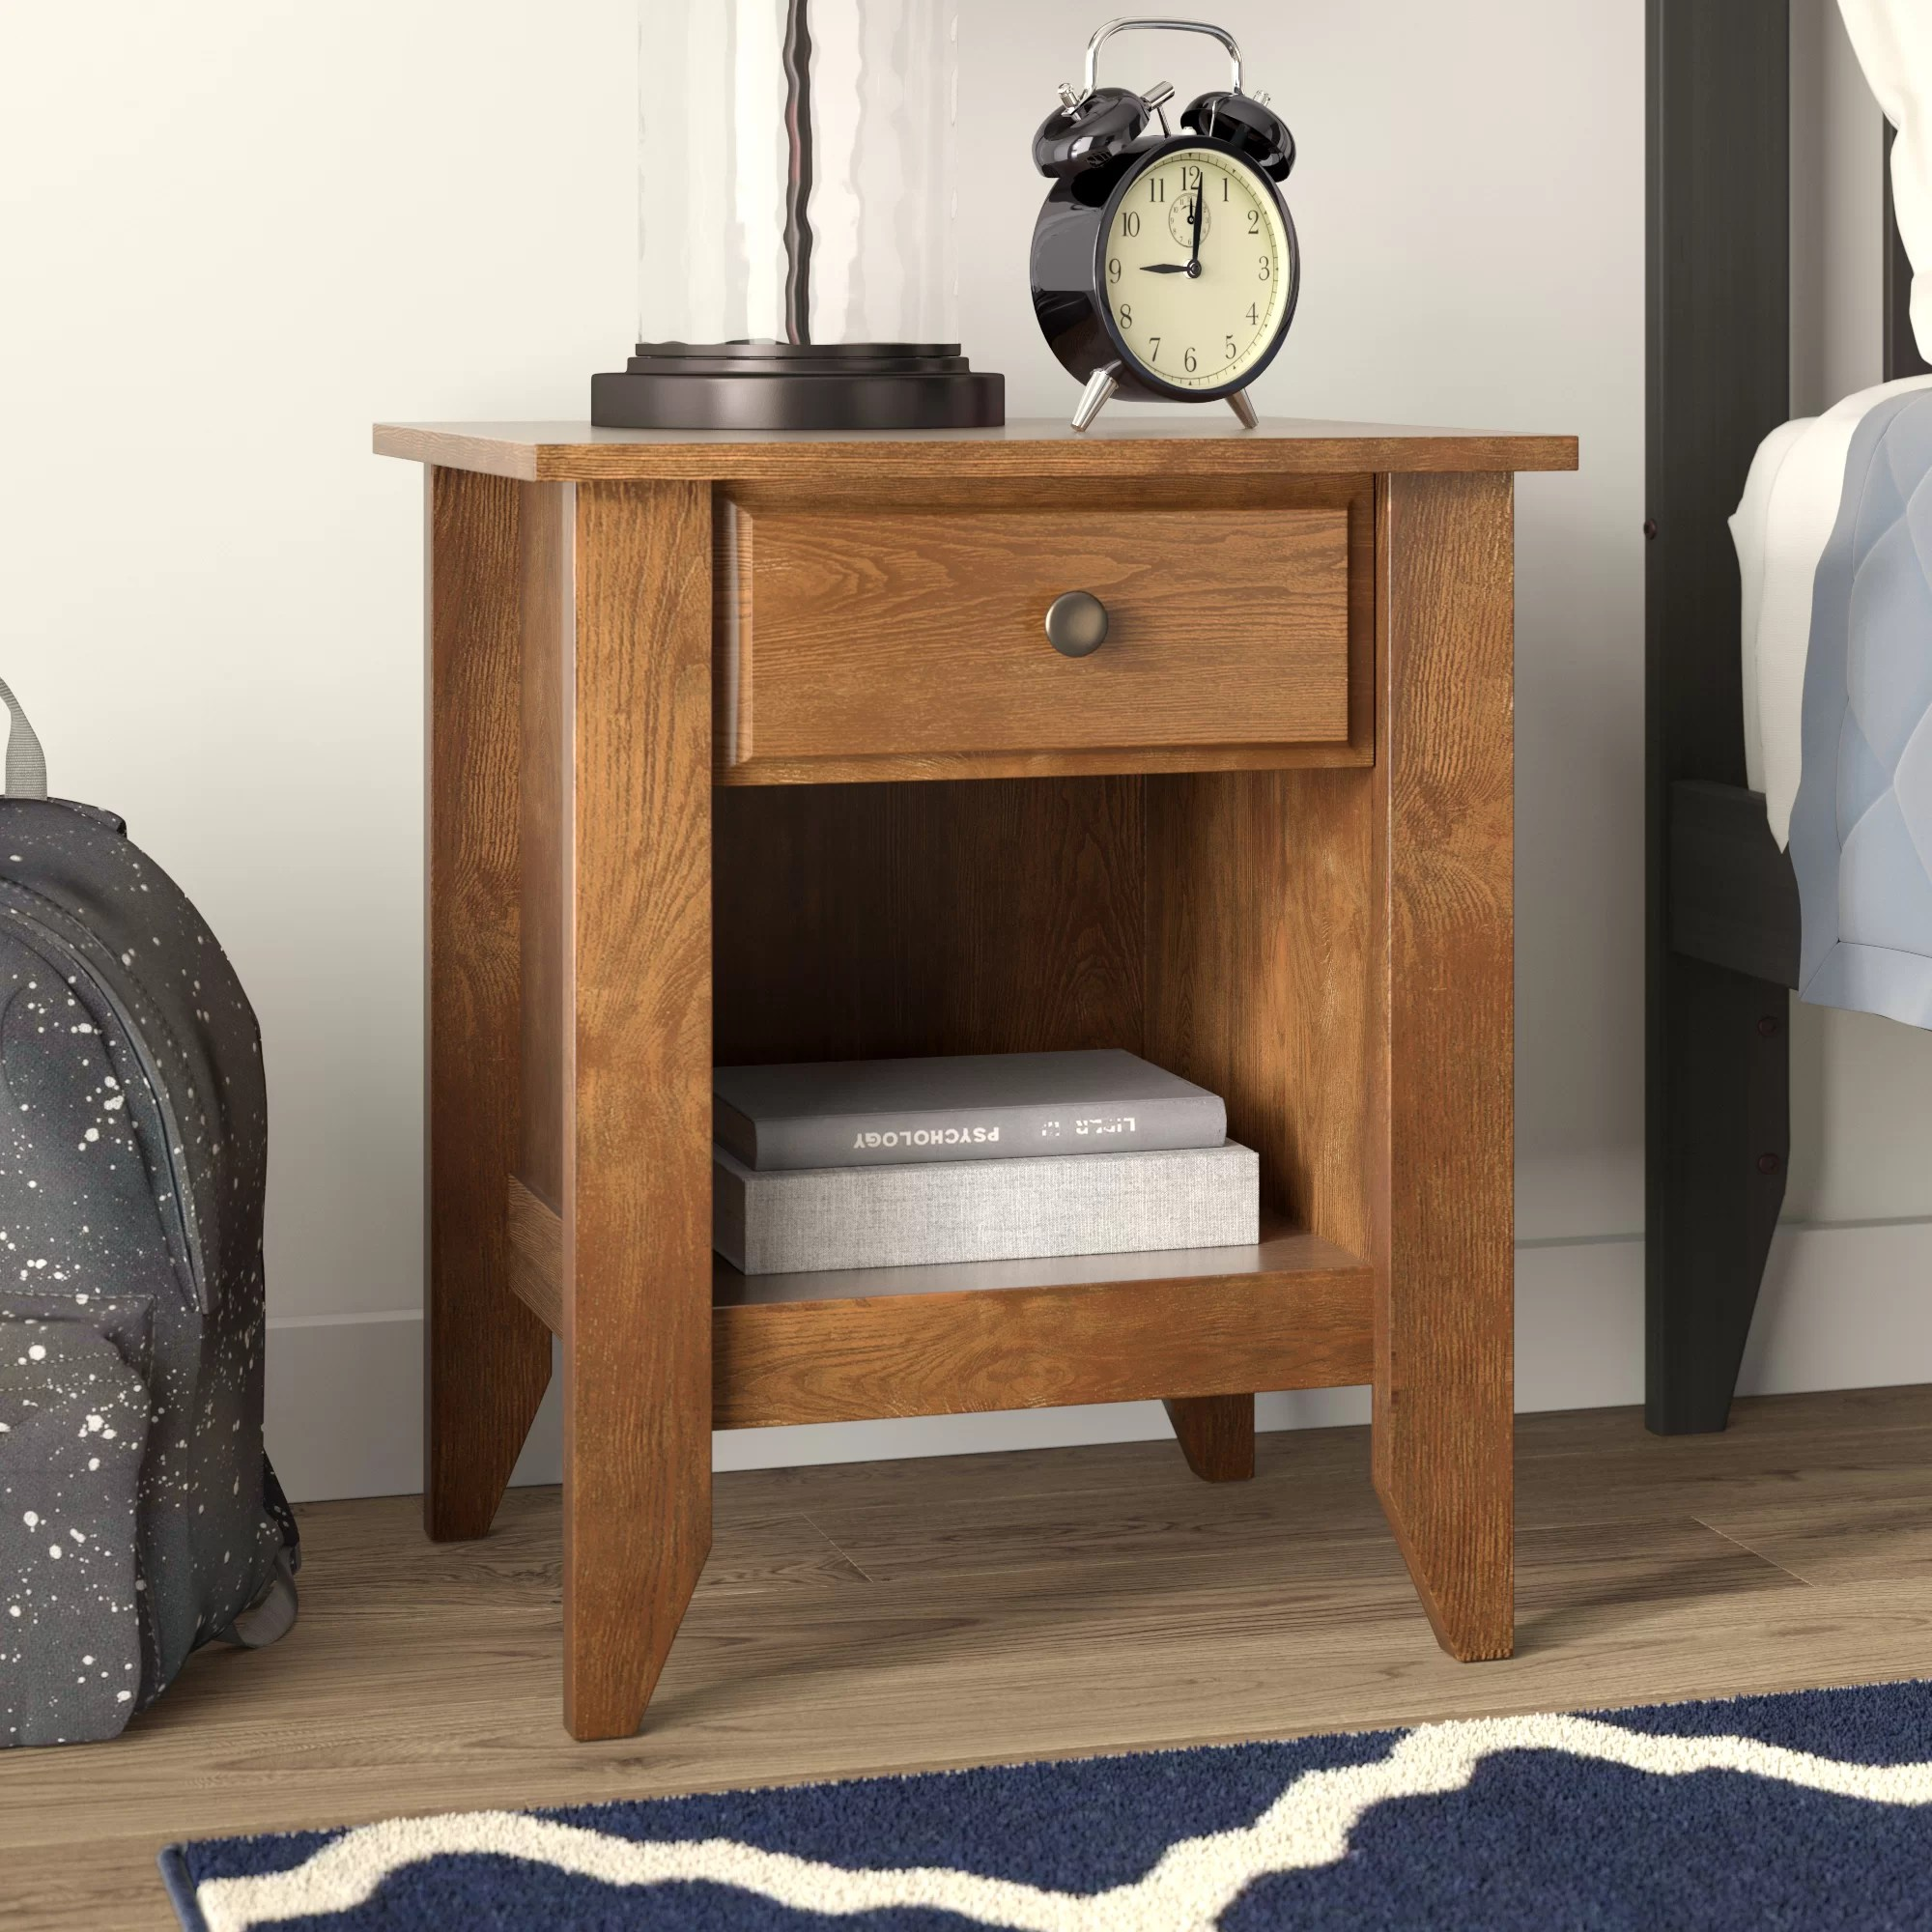 End Table Height How Tall Should Your Side Table Be Wayfair